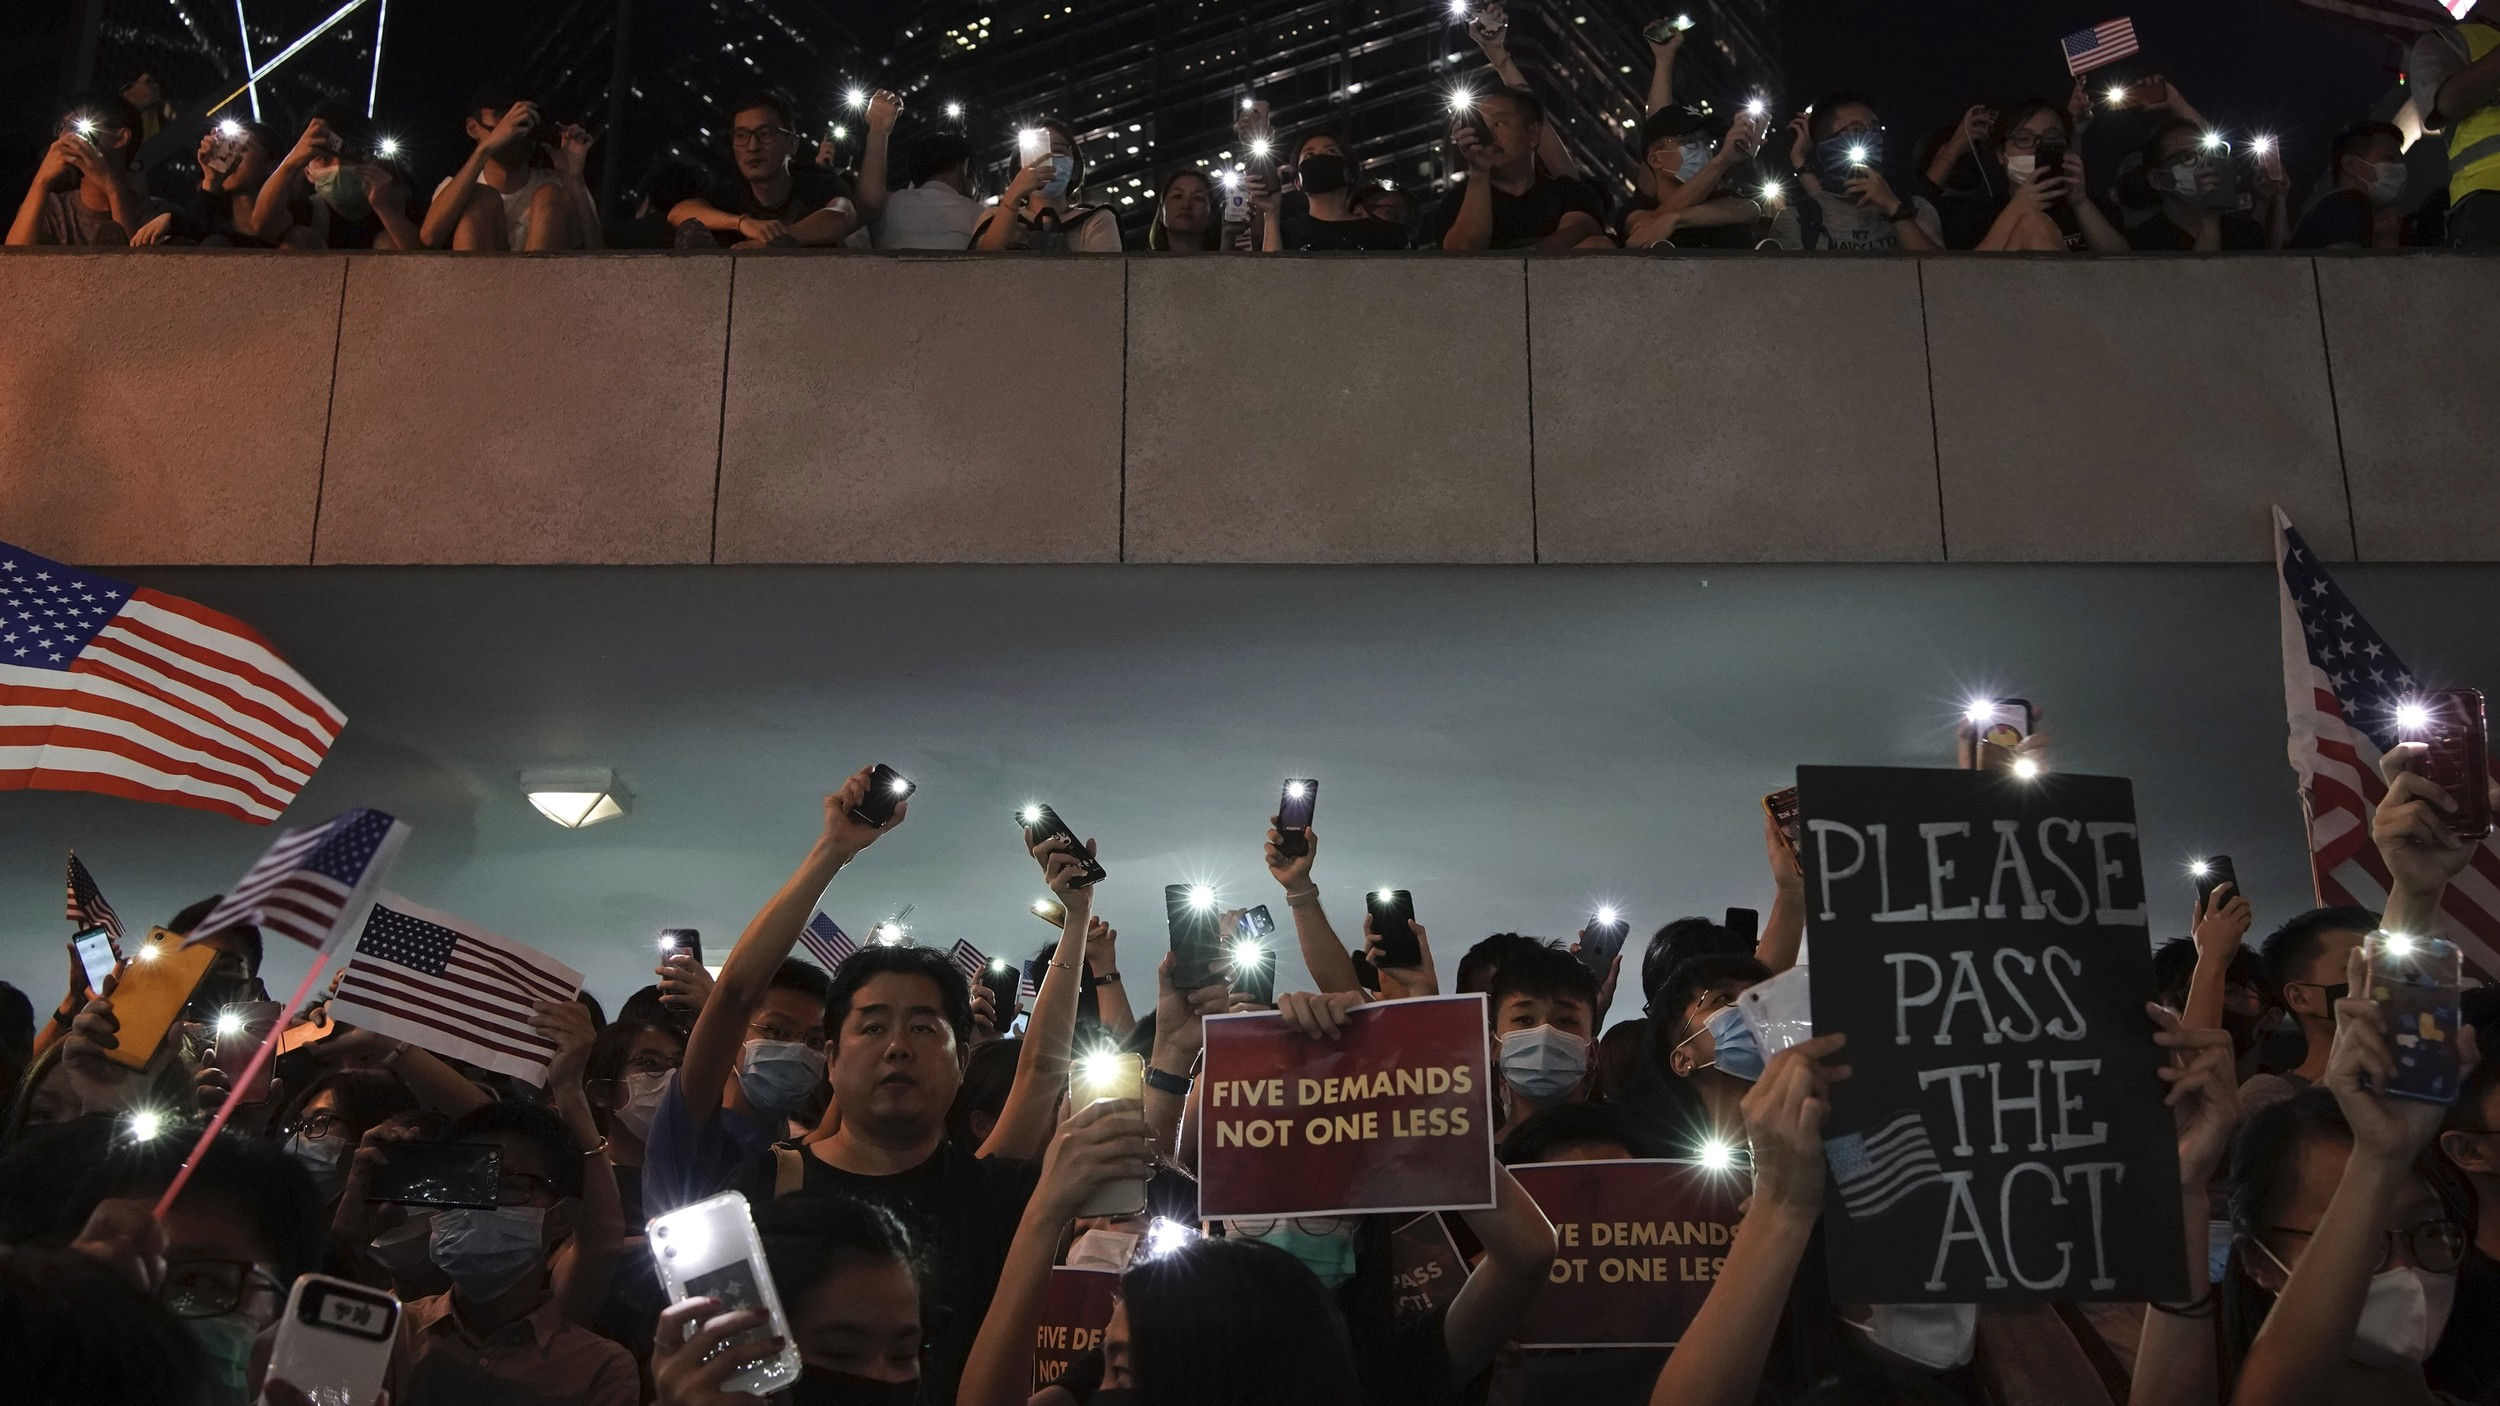 Protestors light their torches during a peaceful rally in central Hong Kong's business district, Oct. 14, 2019. (Photo: AP)